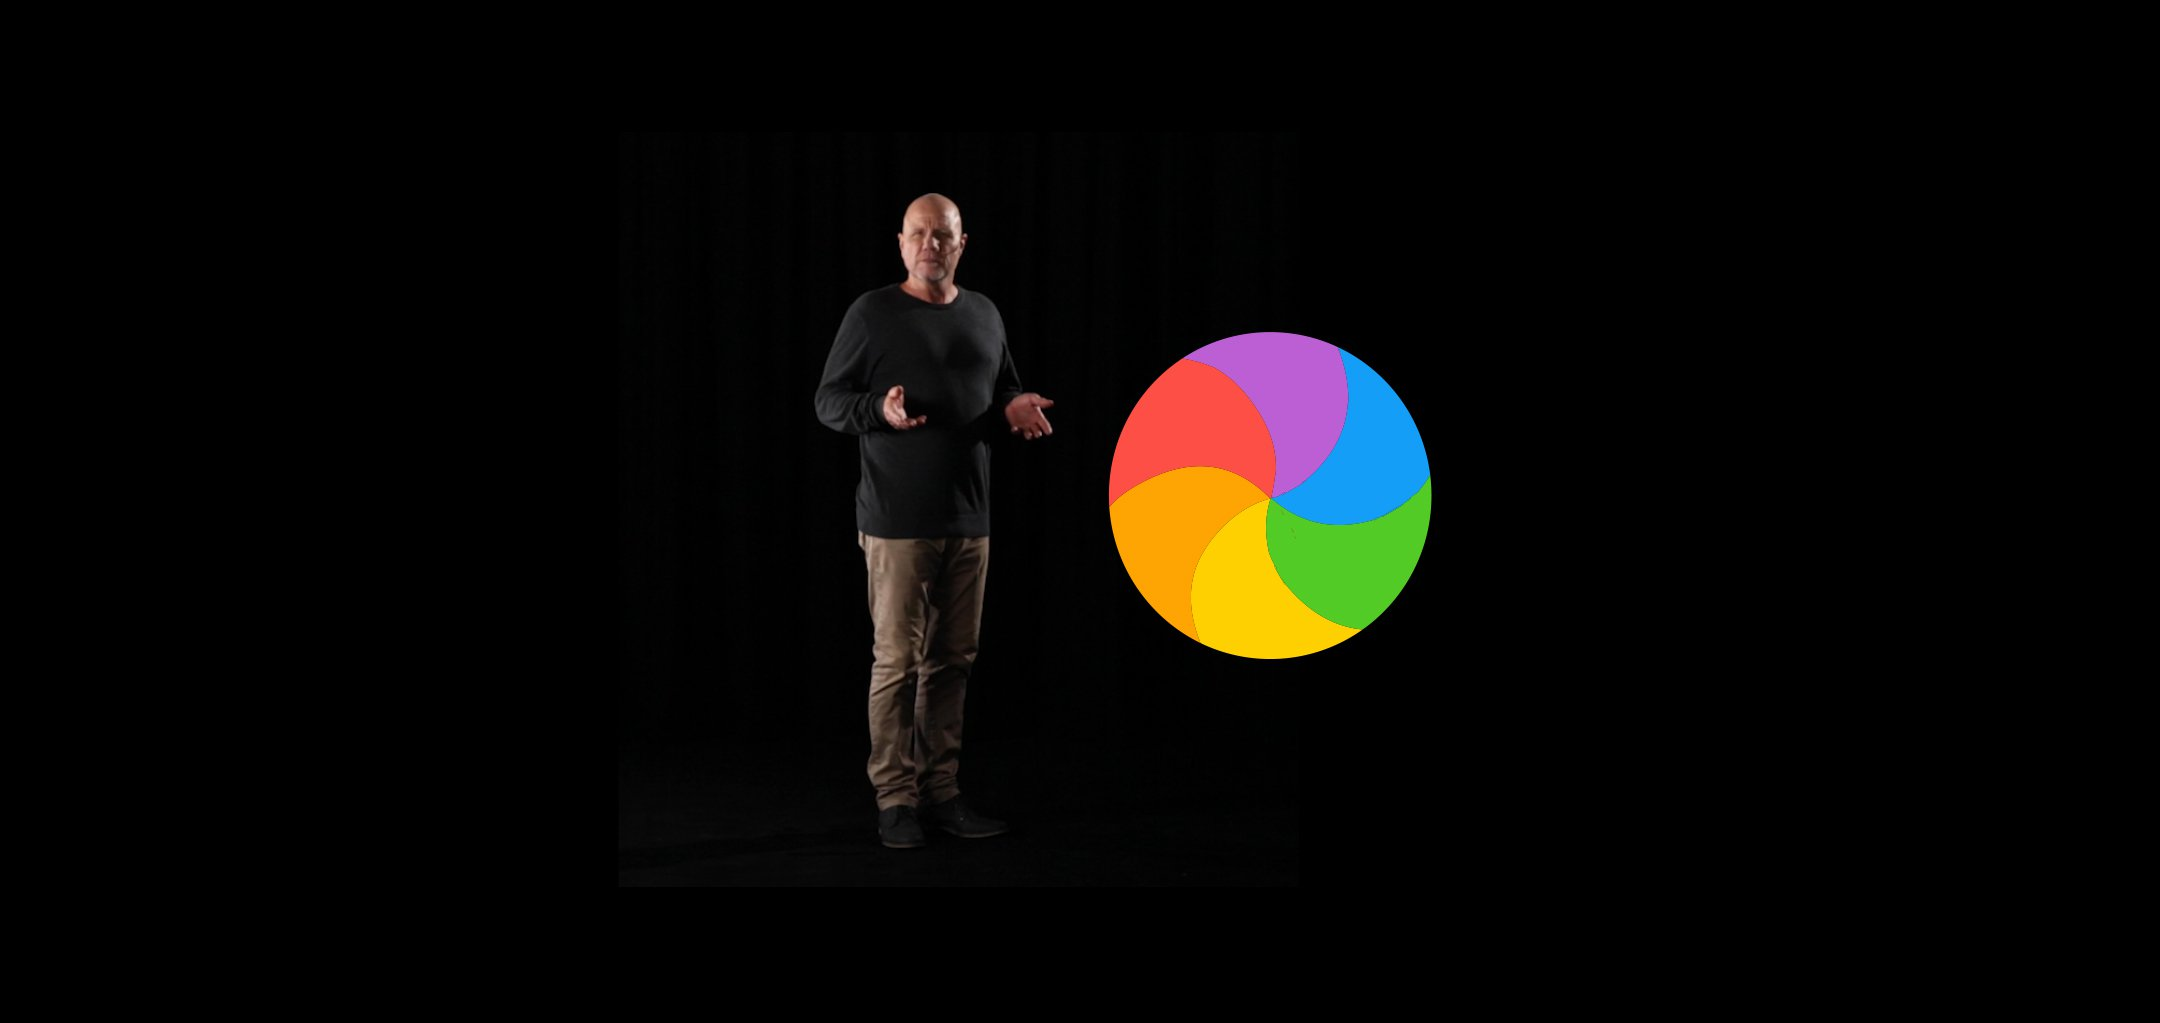 Actor Todd Levi as featured in the immersive experience 'For Those Who Wait', standing in a black void next to a multi-coloured circle